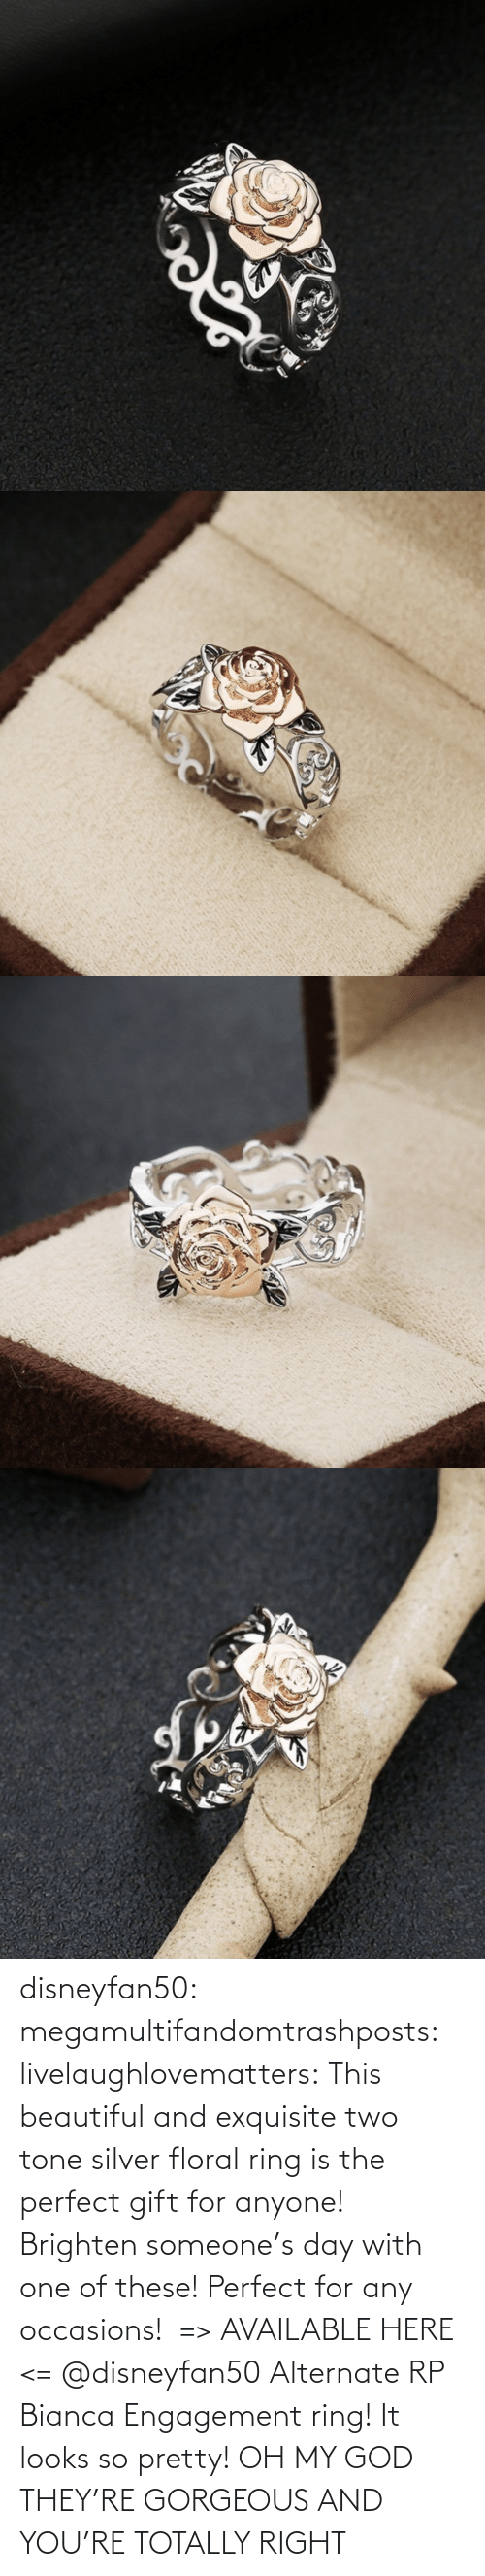 God: disneyfan50:  megamultifandomtrashposts: livelaughlovematters:  This beautiful and exquisite two tone silver floral ring is the perfect gift for anyone! Brighten someone's day with one of these! Perfect for any occasions!  => AVAILABLE HERE <=    @disneyfan50 Alternate RP Bianca Engagement ring! It looks so pretty!  OH MY GOD THEY'RE GORGEOUS AND YOU'RE TOTALLY RIGHT